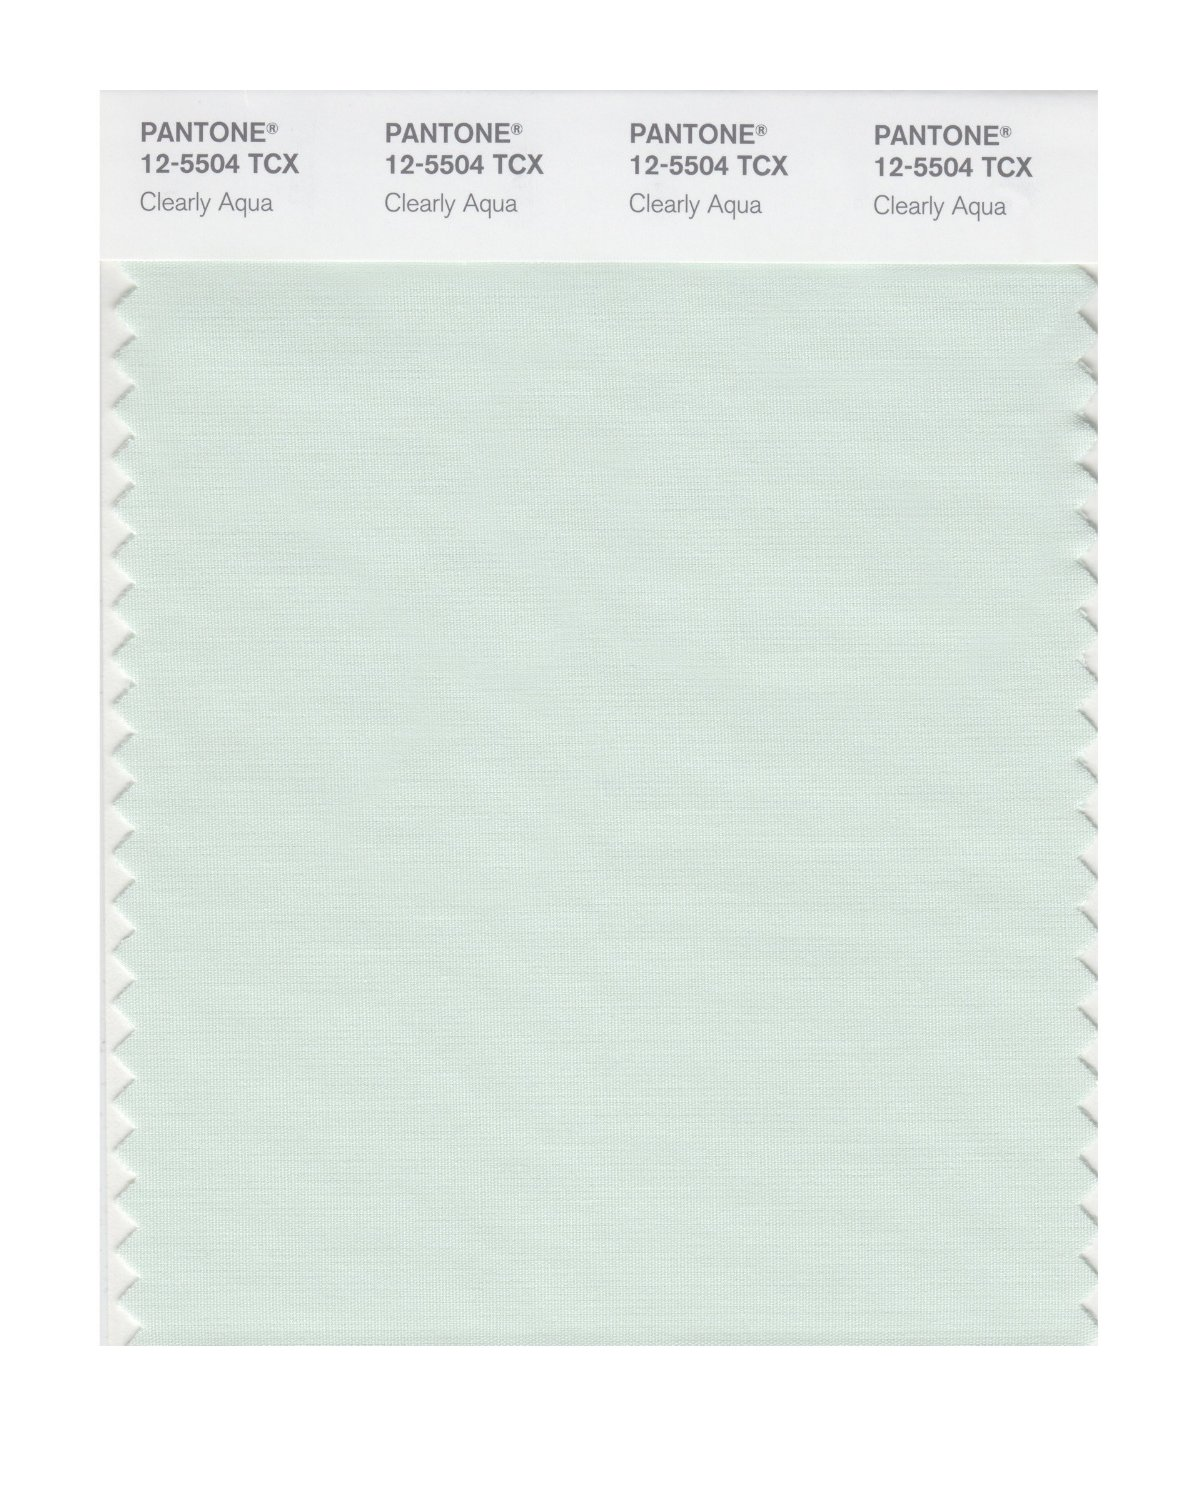 Pantone Smart Swatch 12-5504 Clearly Aqua